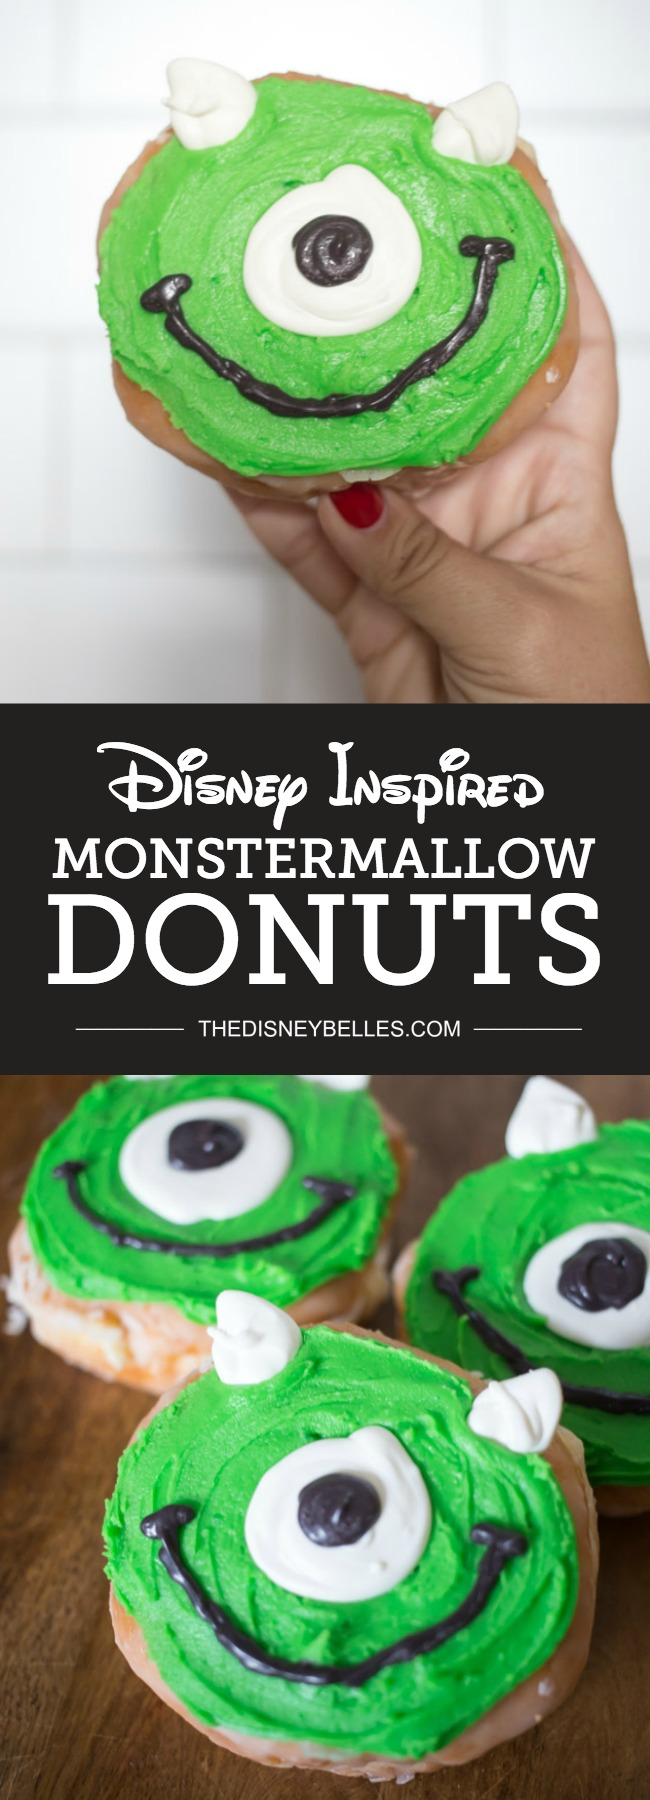 Can't make it to Disneyland for Halloweentime? Enjoy the next best thing, whip up these adorable Disneyland Monstermallow Donuts to enjoy from the comfort of home!